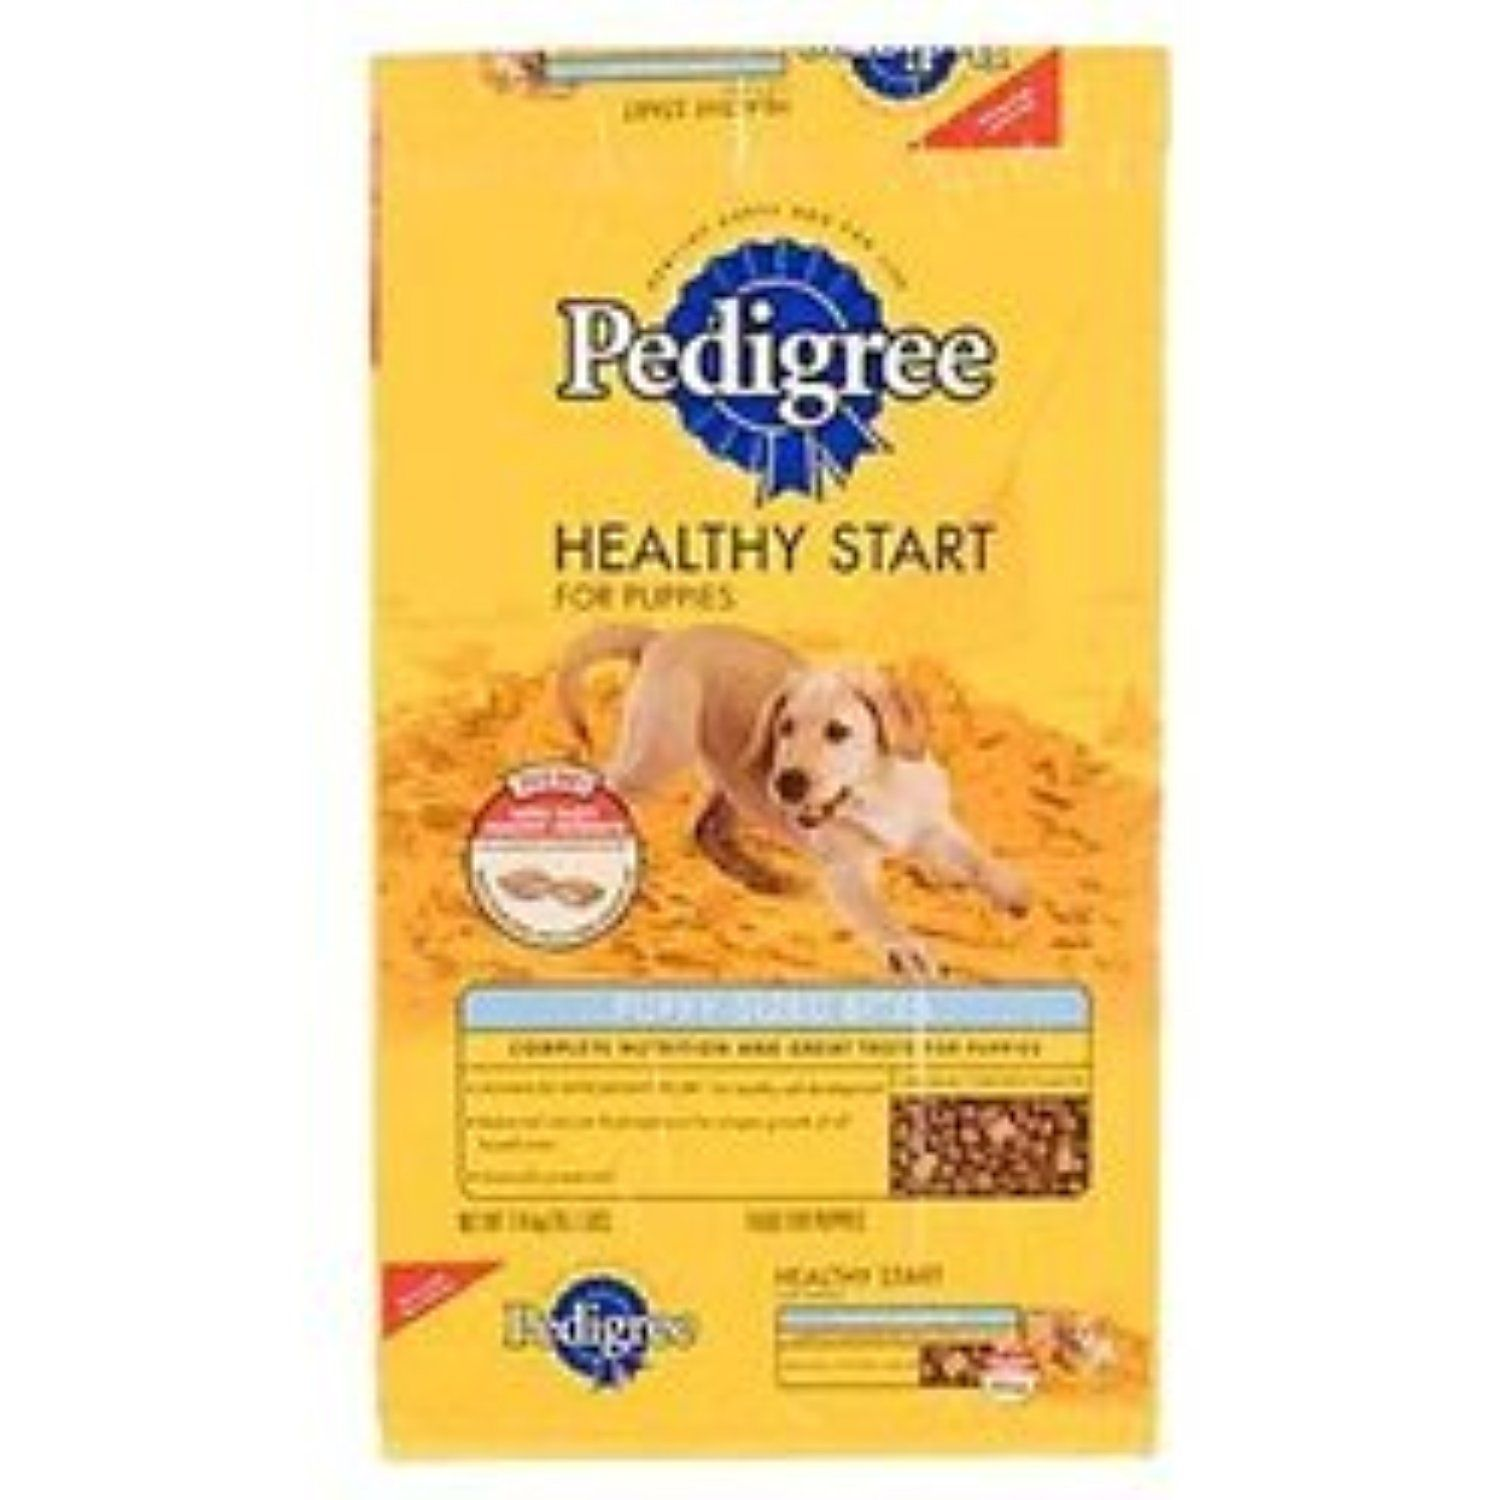 Pedigree Chicken Flavor Dog Food For Puppies You Can Check Out